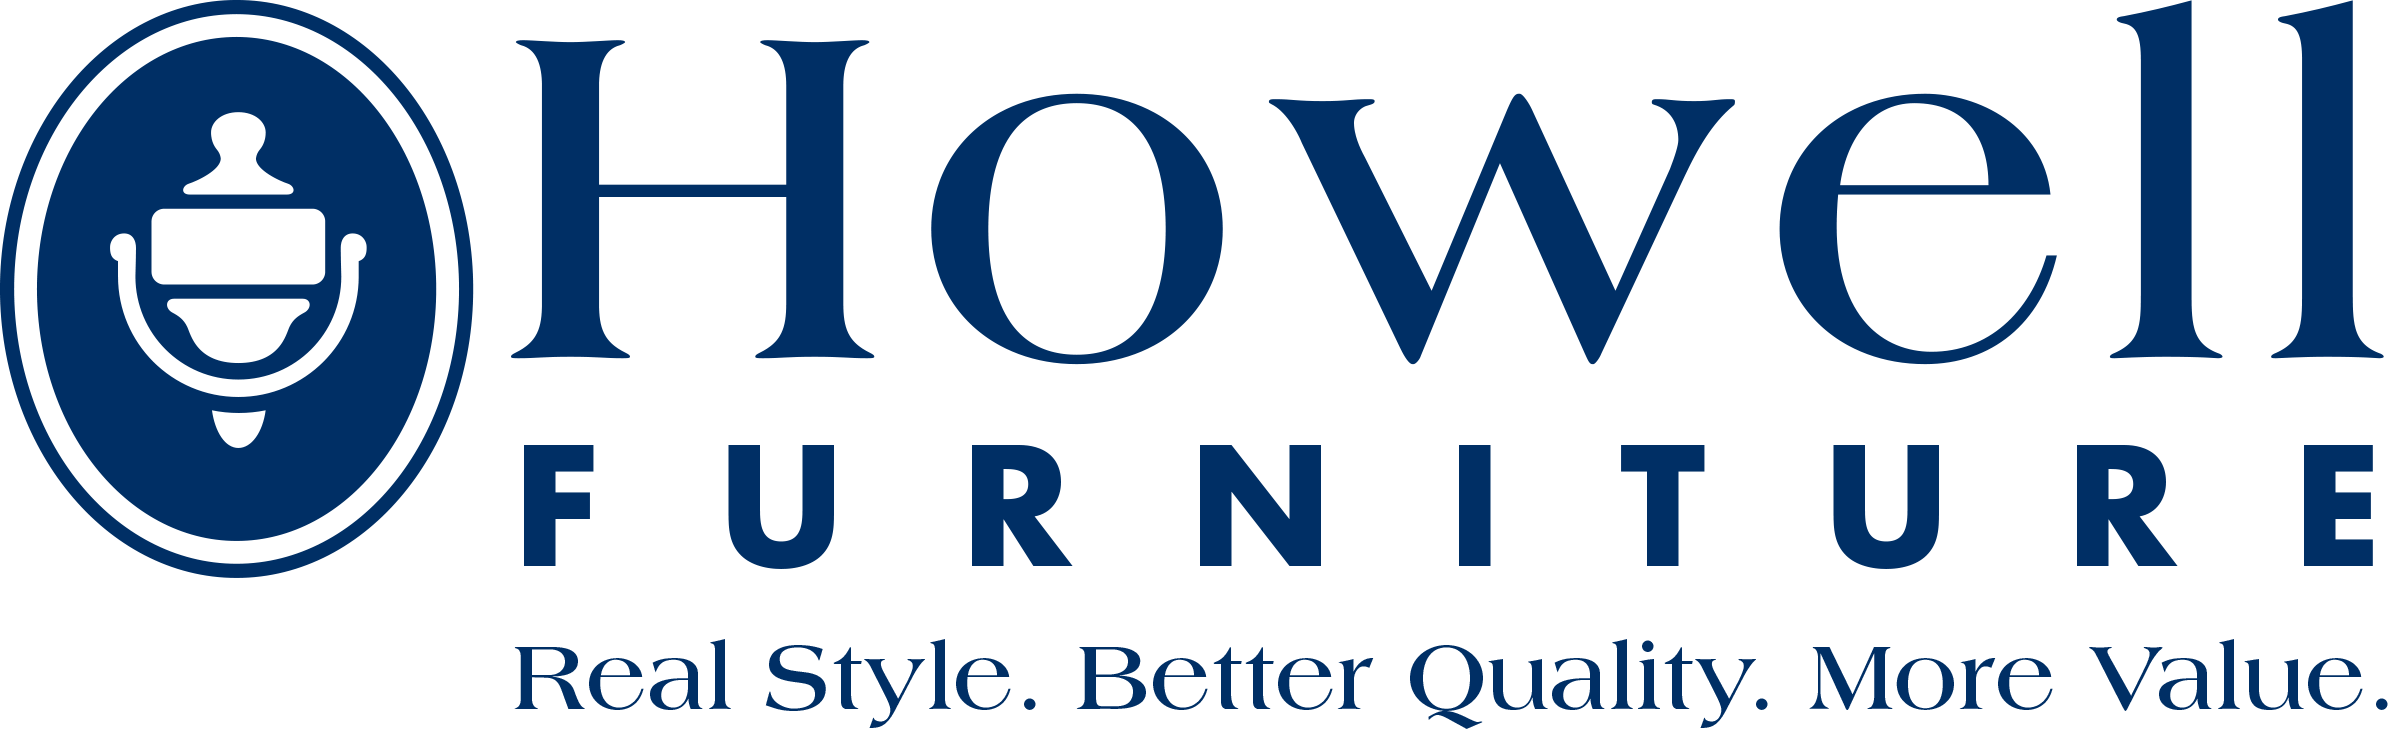 Exceptional Howell Furniture | Beaumont, Port Arthur, Nederland, Texas, Lake Charles,  Louisiana Furniture Store